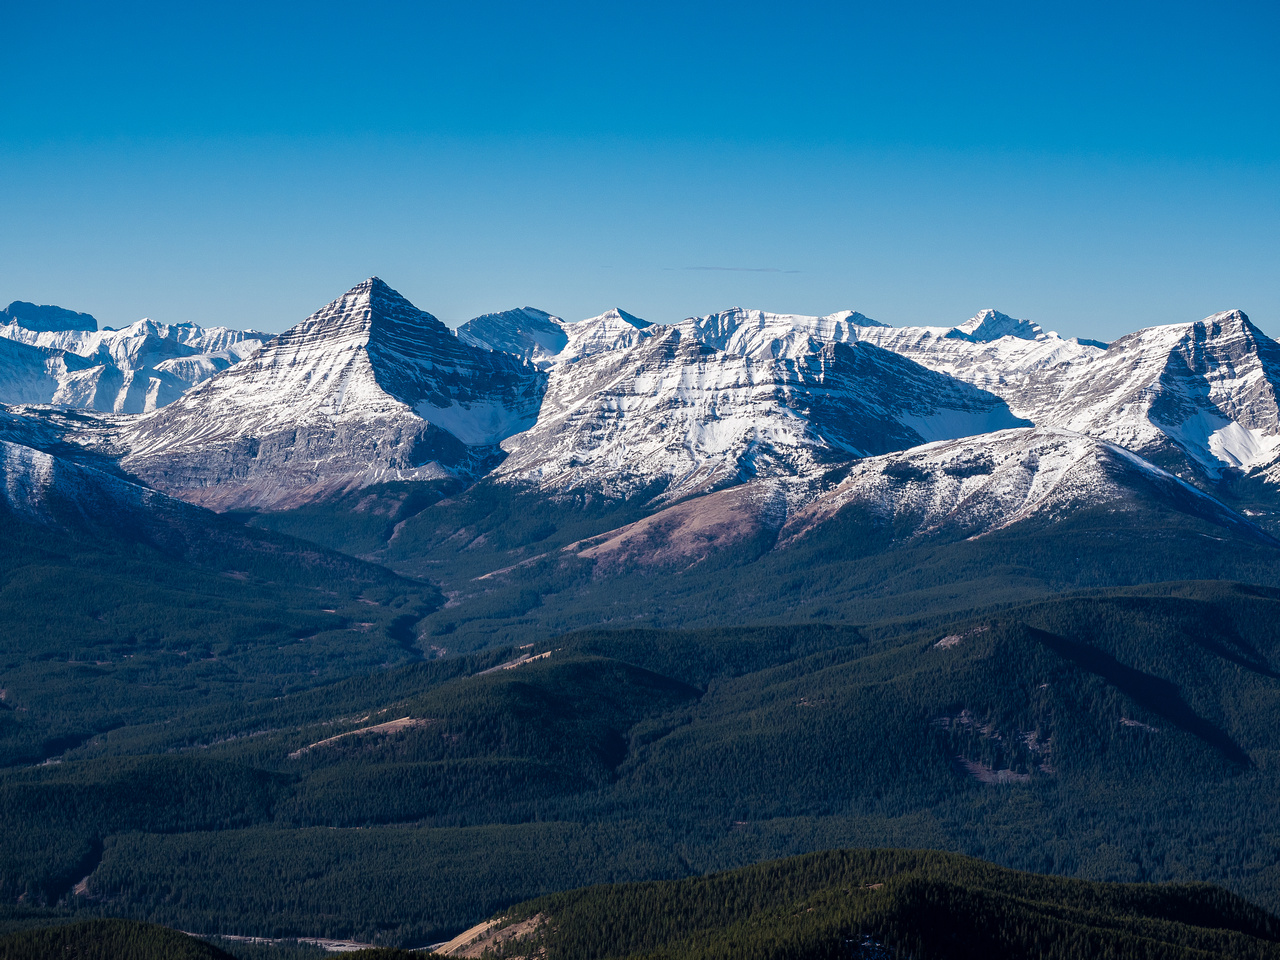 Mount McPhail at left with Horned and Bishop mountains to its right. Hill of the Flowers in the foreground.